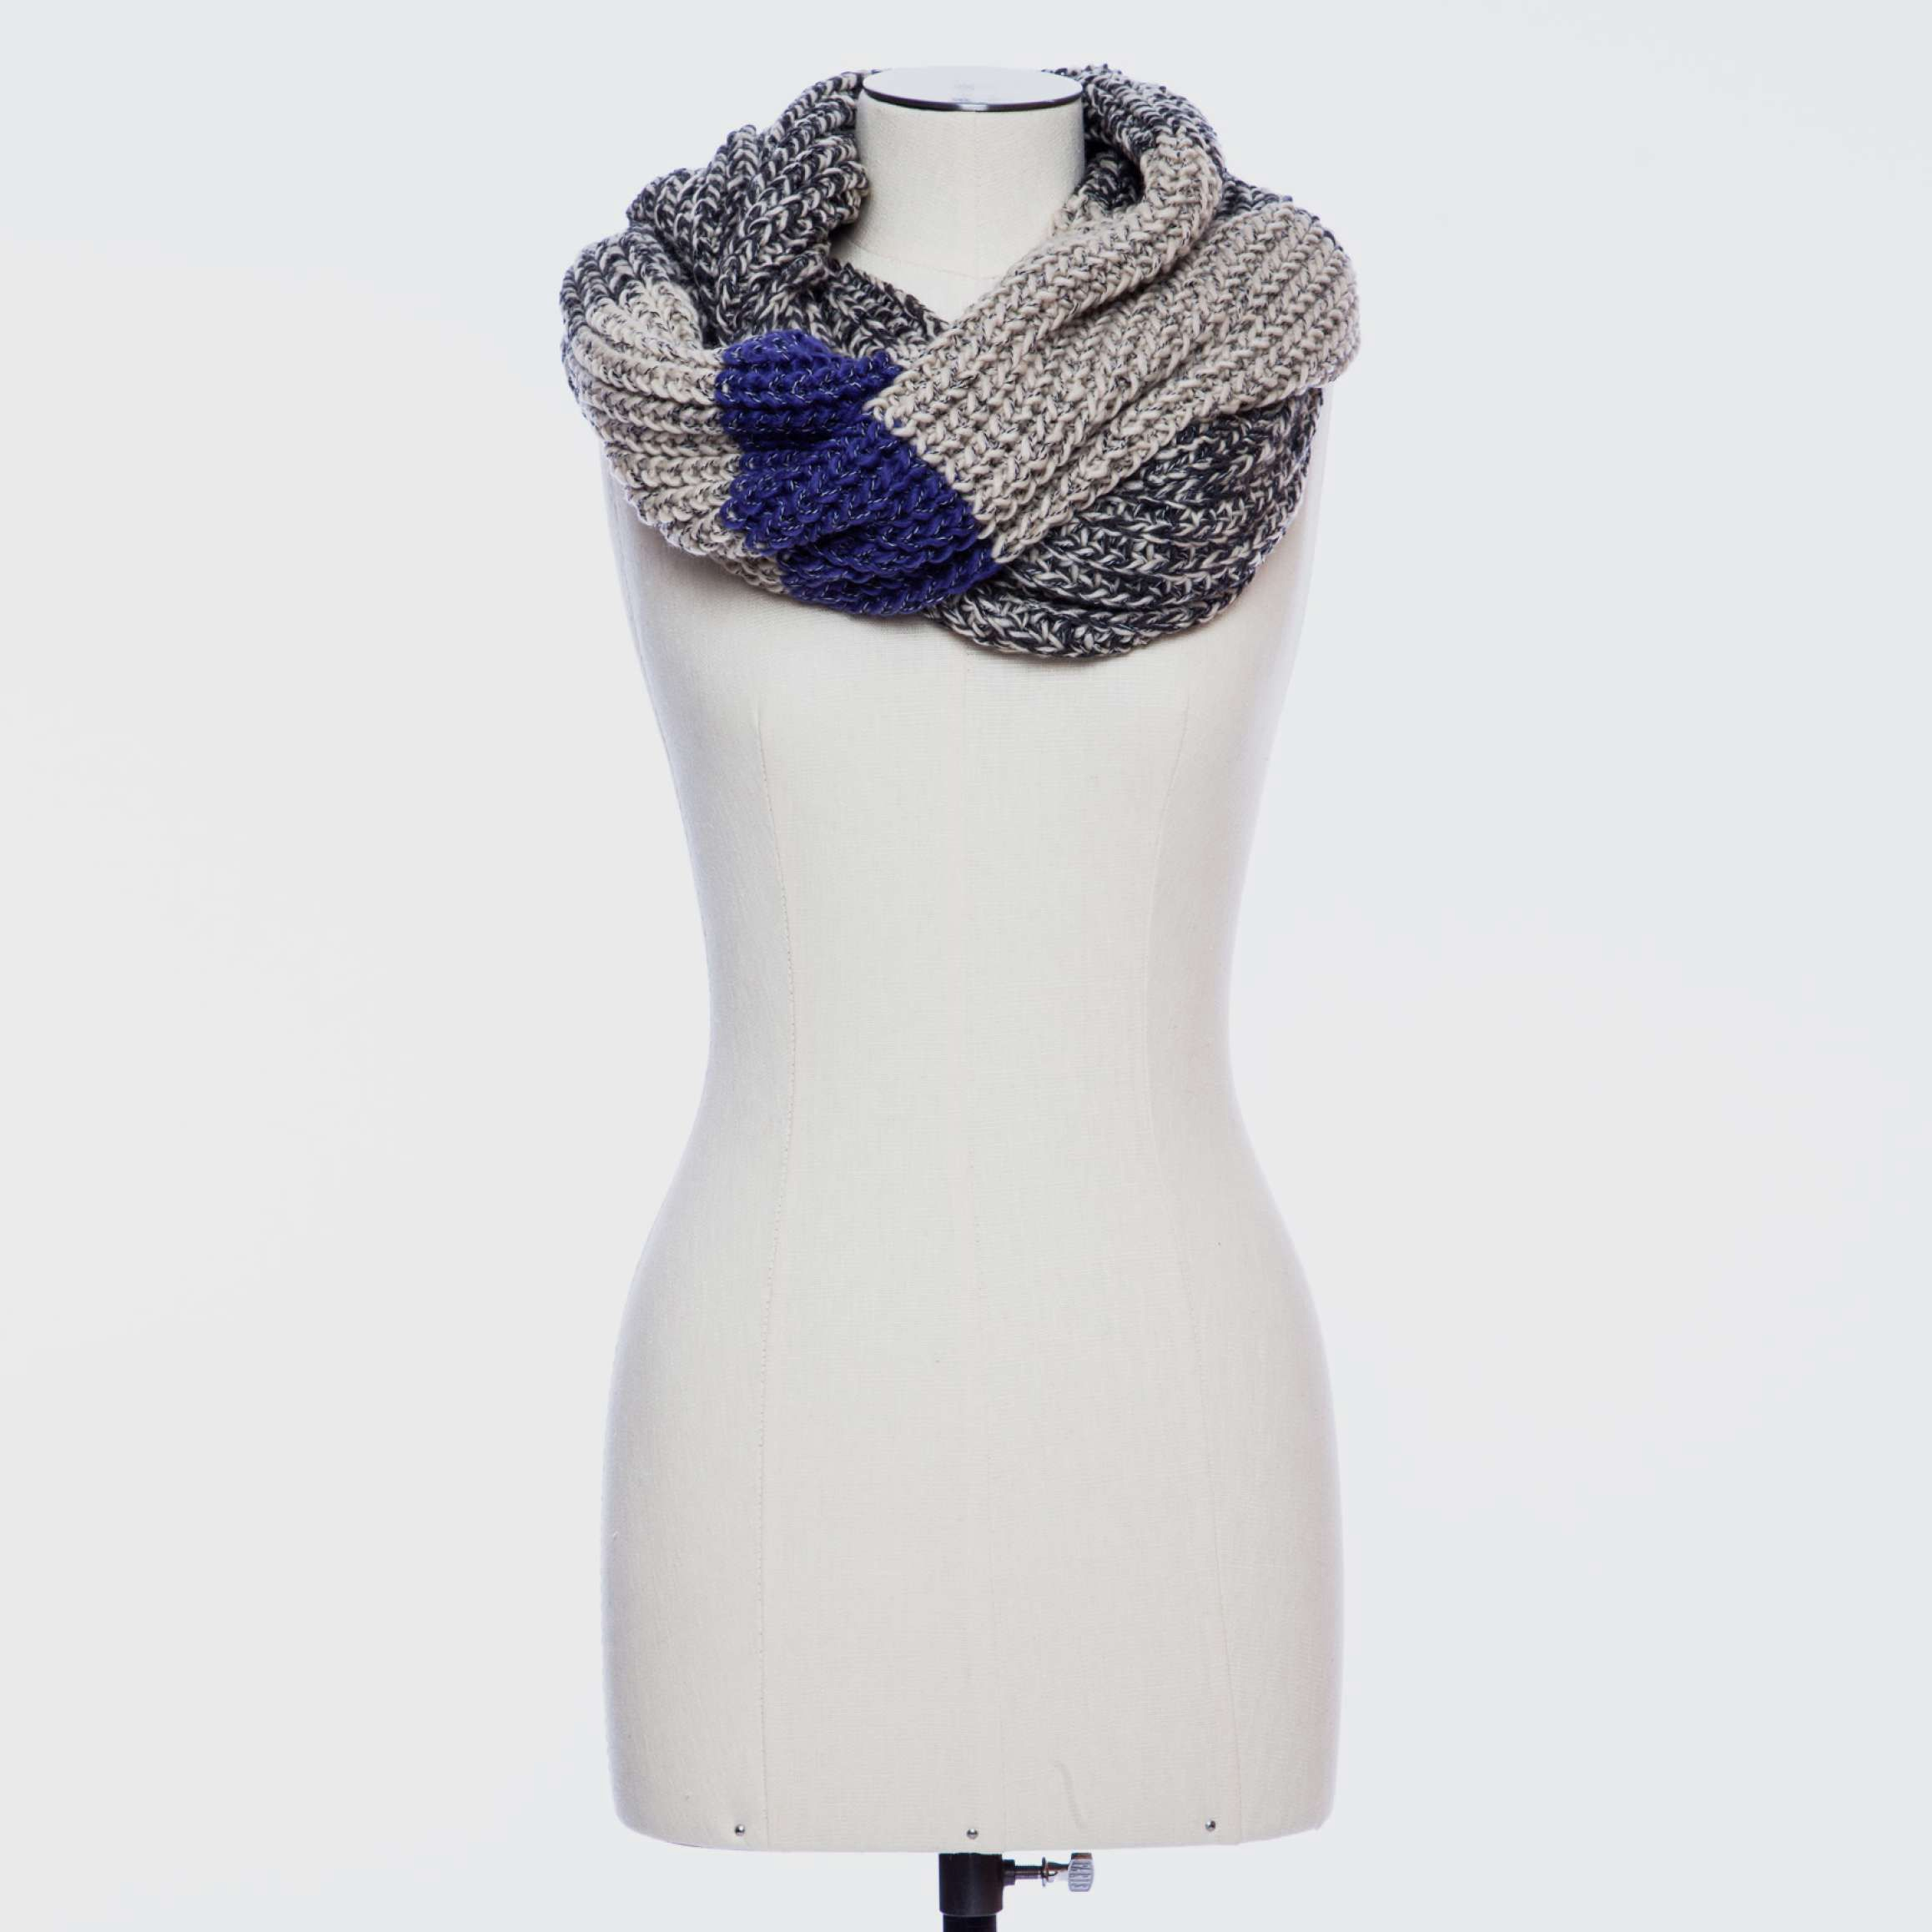 91b44dd75 Roots chunky infinity scarf-love their cabin line   Fashion ...